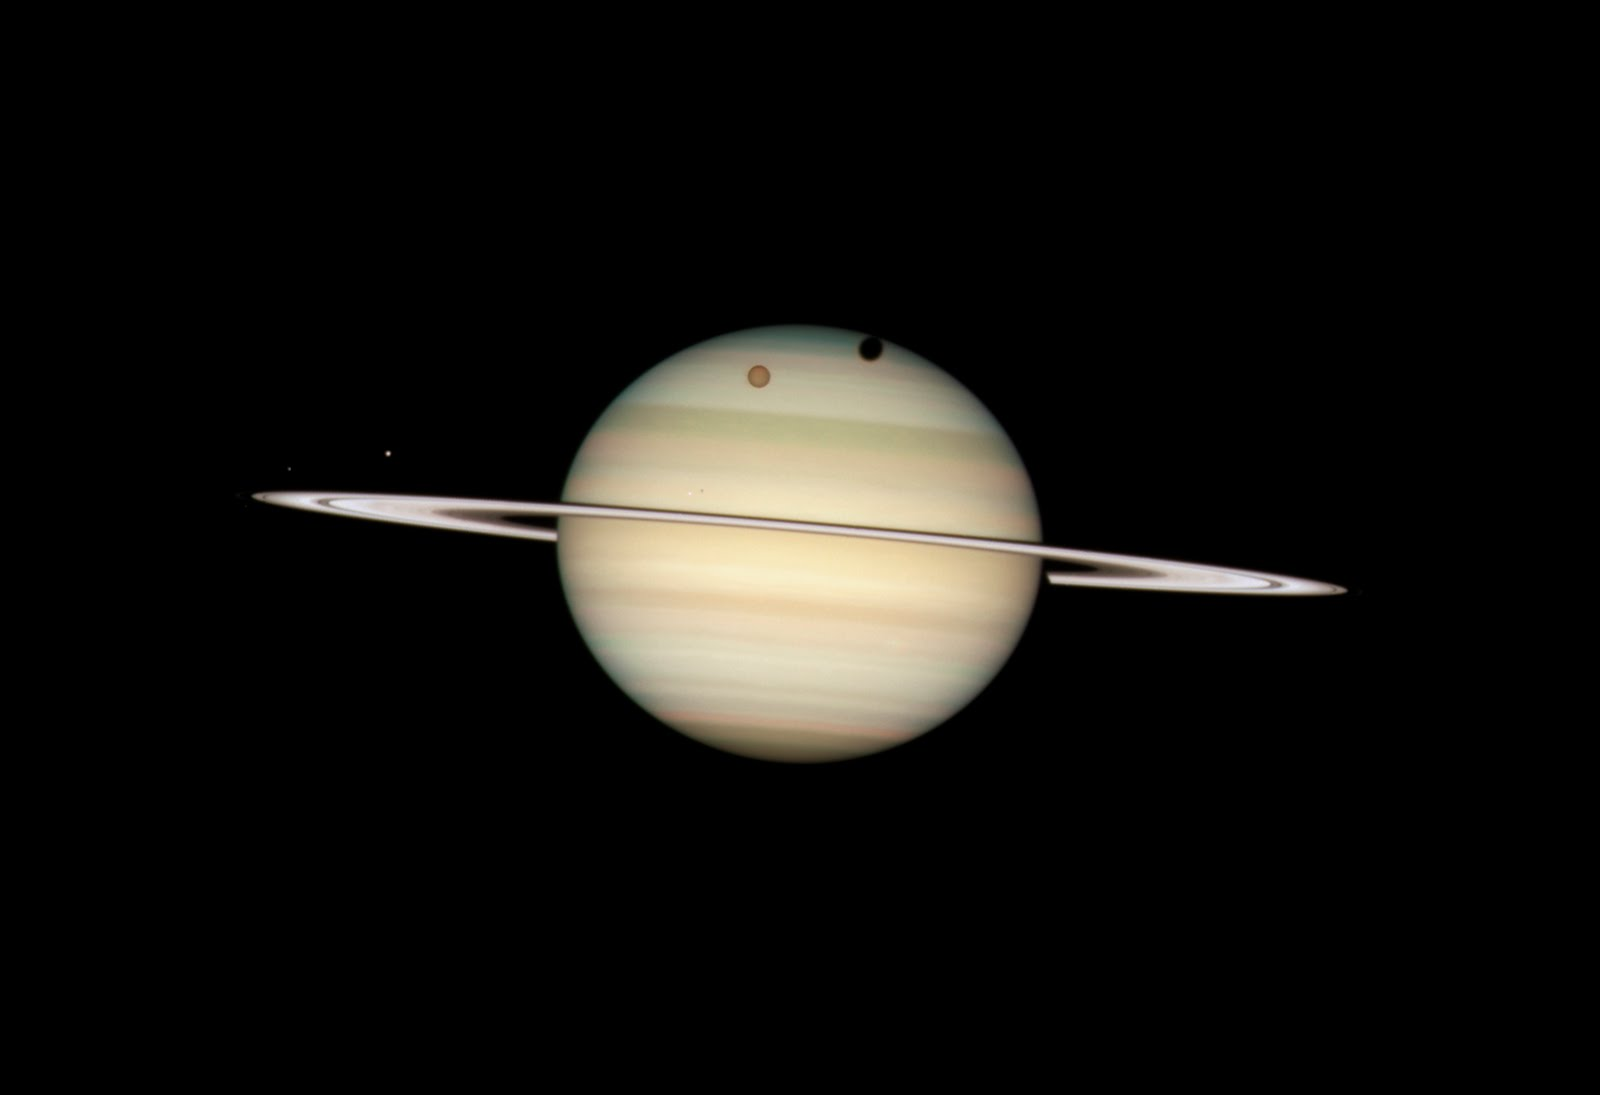 Space: Planet Saturn